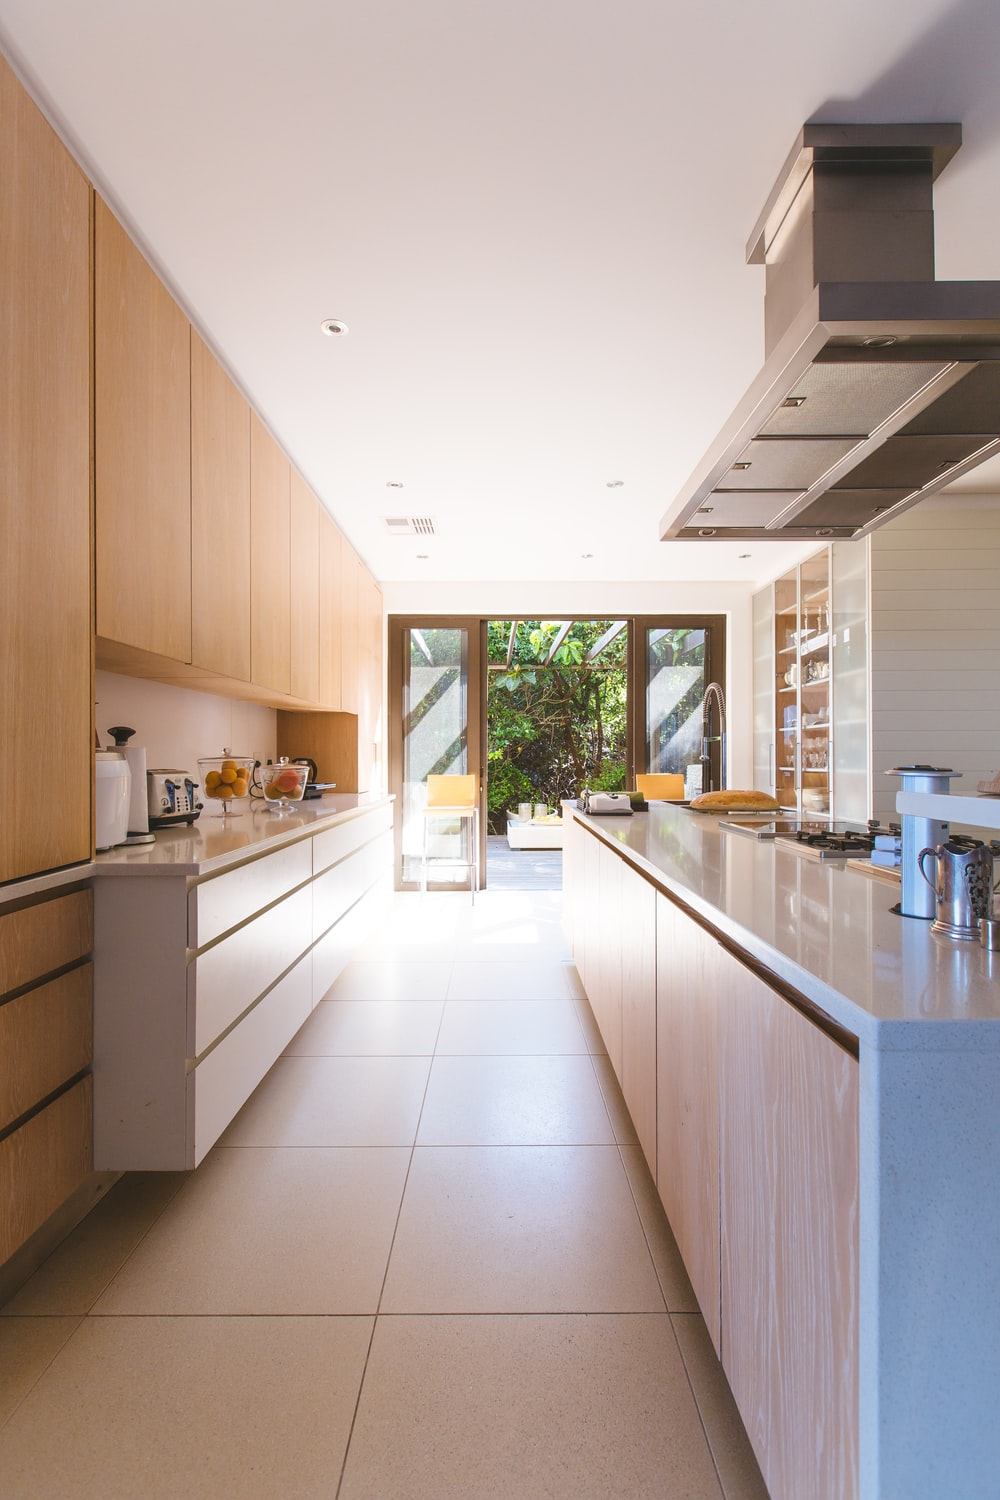 white wooden kitchen island and cupboard cabinets near glass panel door